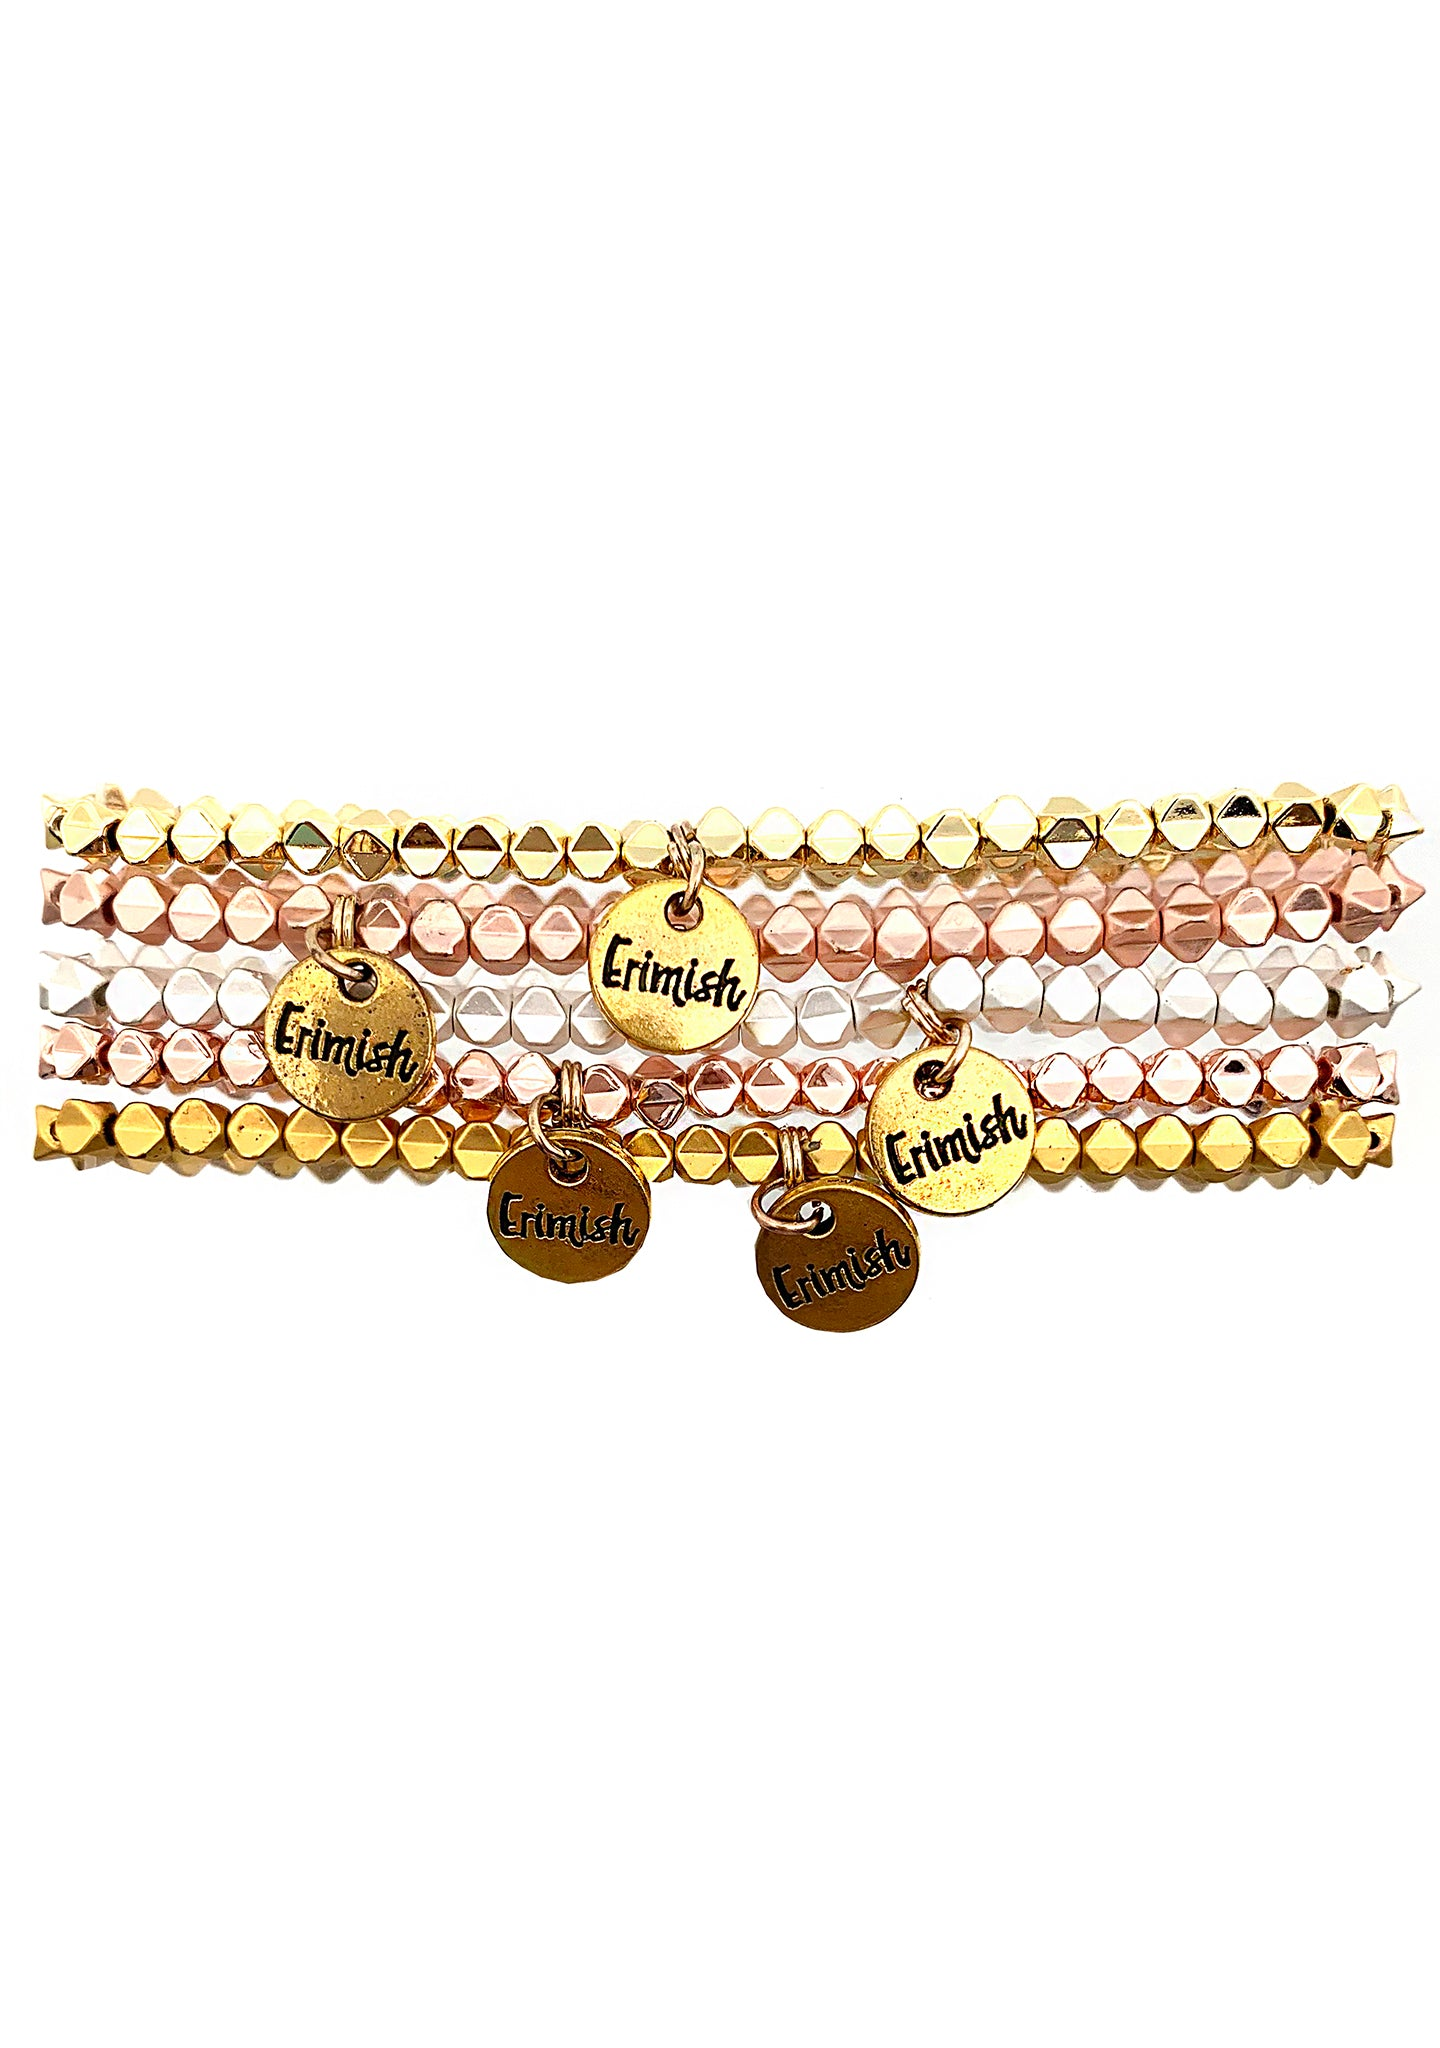 Erimish 90's Chix Pop Rocks Stacked Bracelet